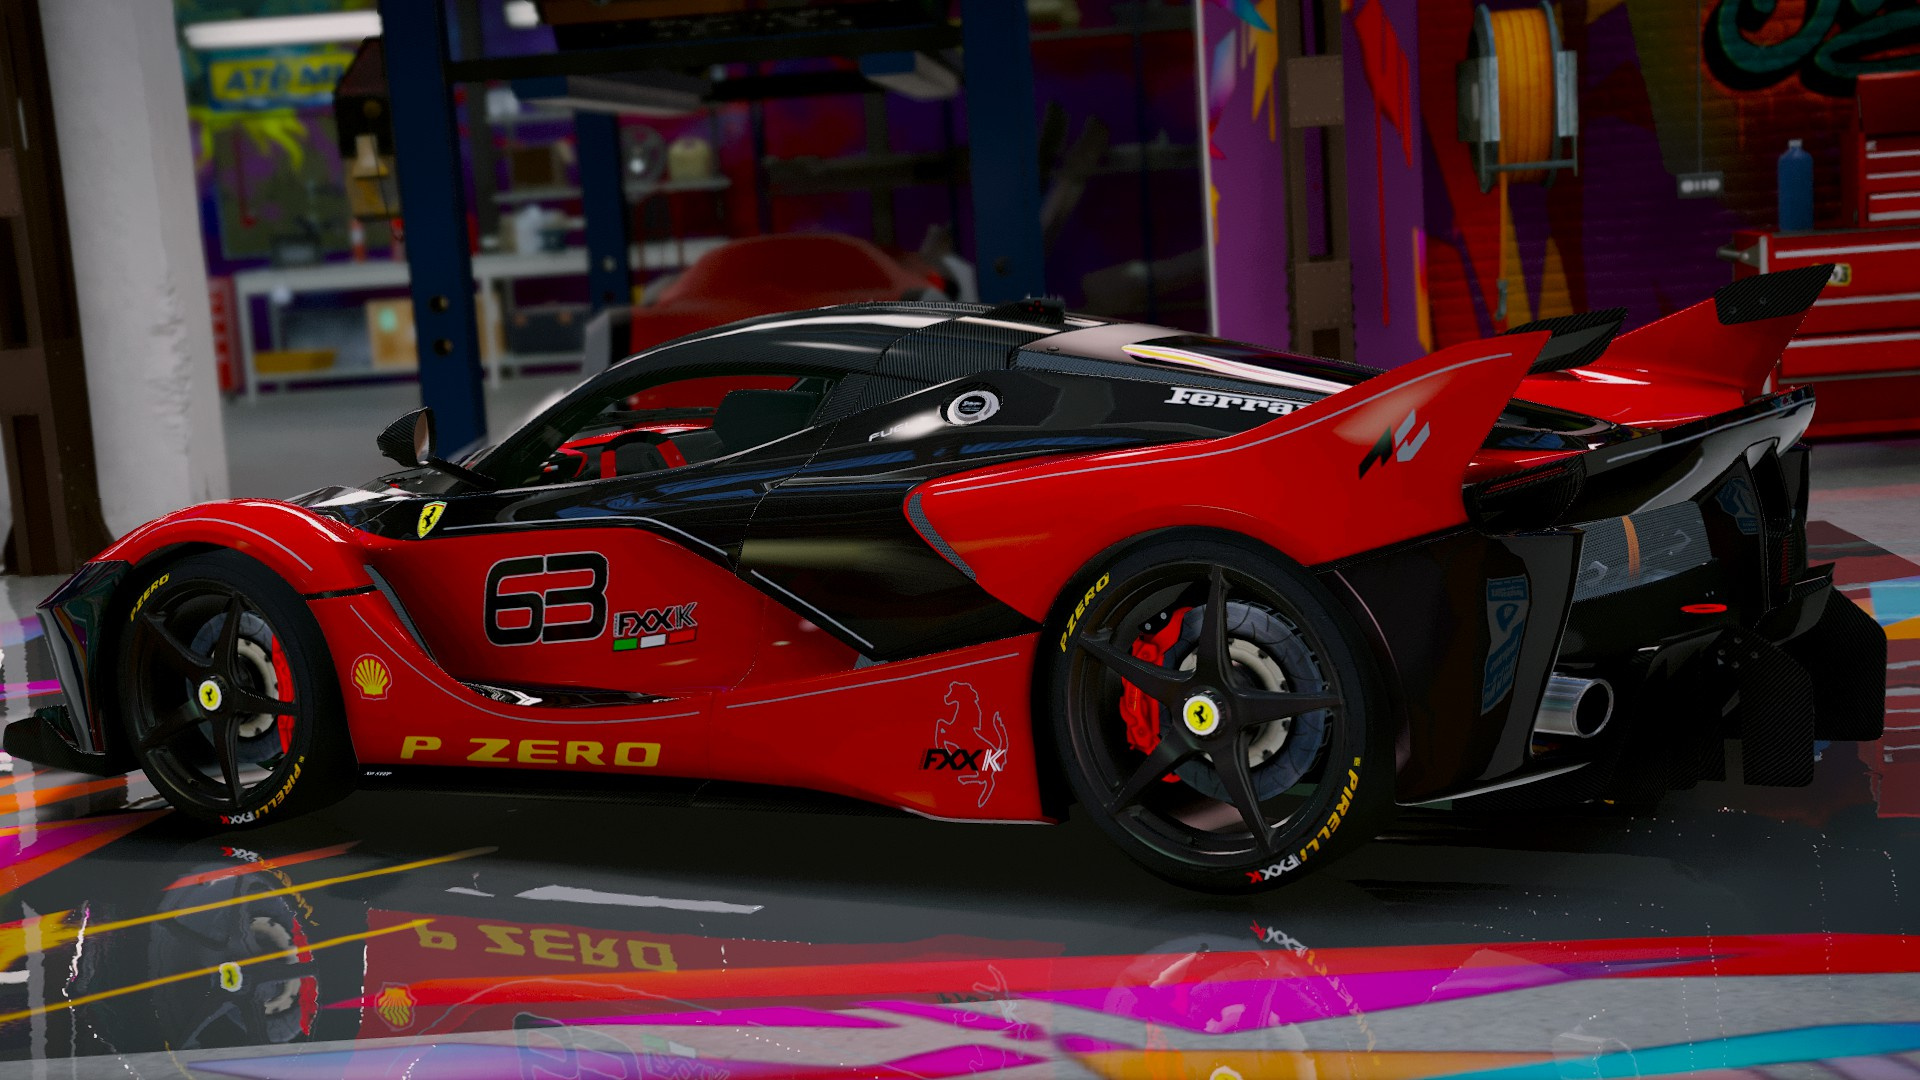 Ferrari Fxx K Hybrid Engine Ferrari Engine Problems And